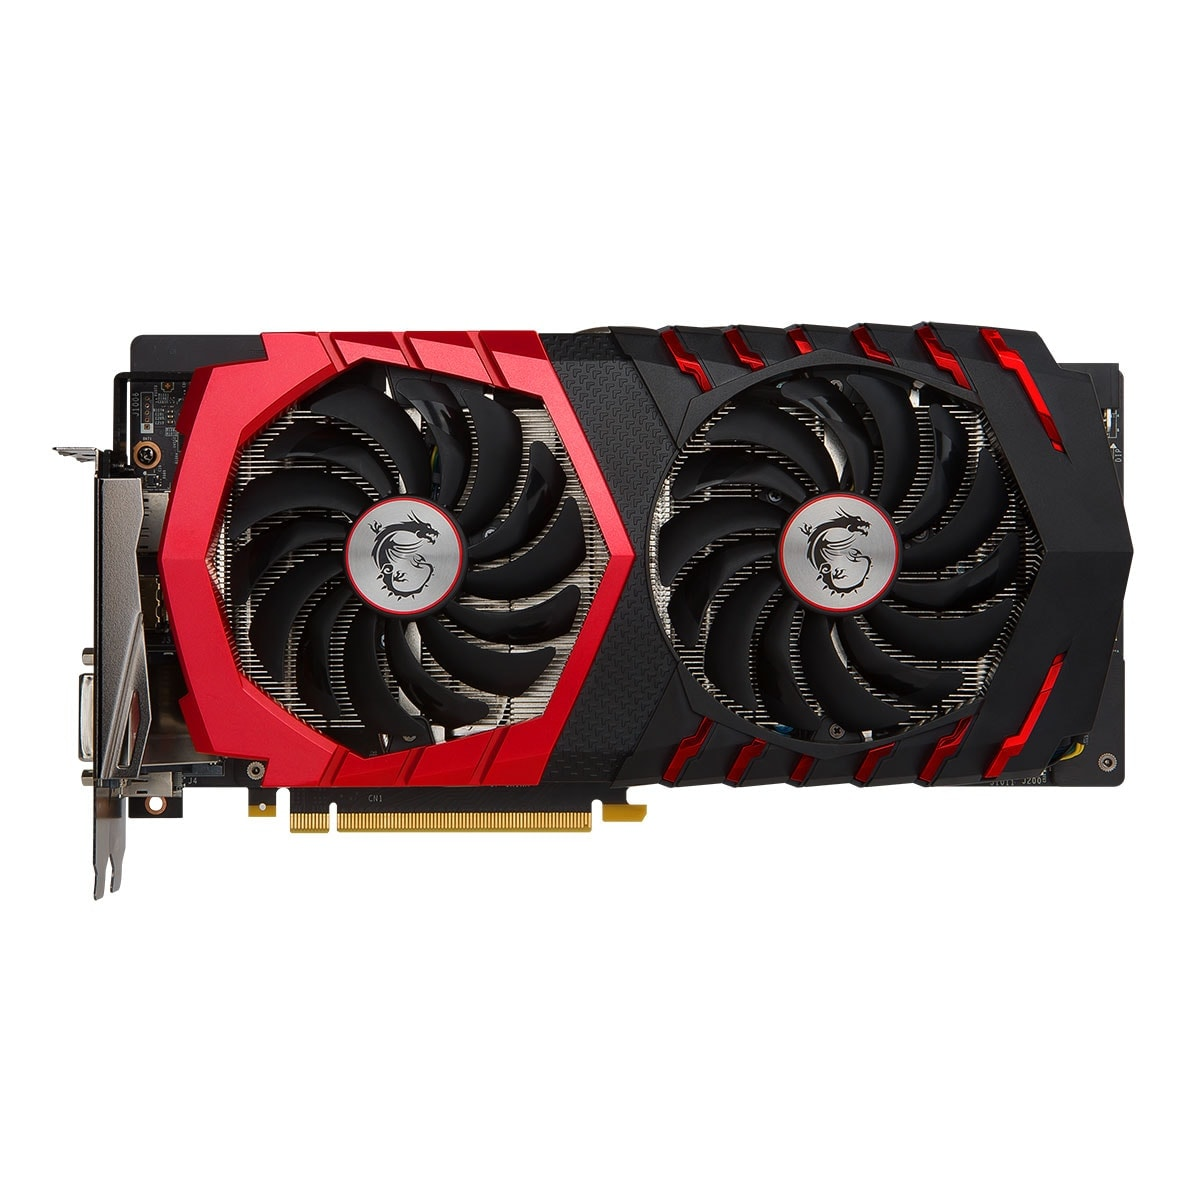 MSI GTX 1060 GAMING X 6G 6Go - Carte graphique MSI - Cybertek.fr - 2